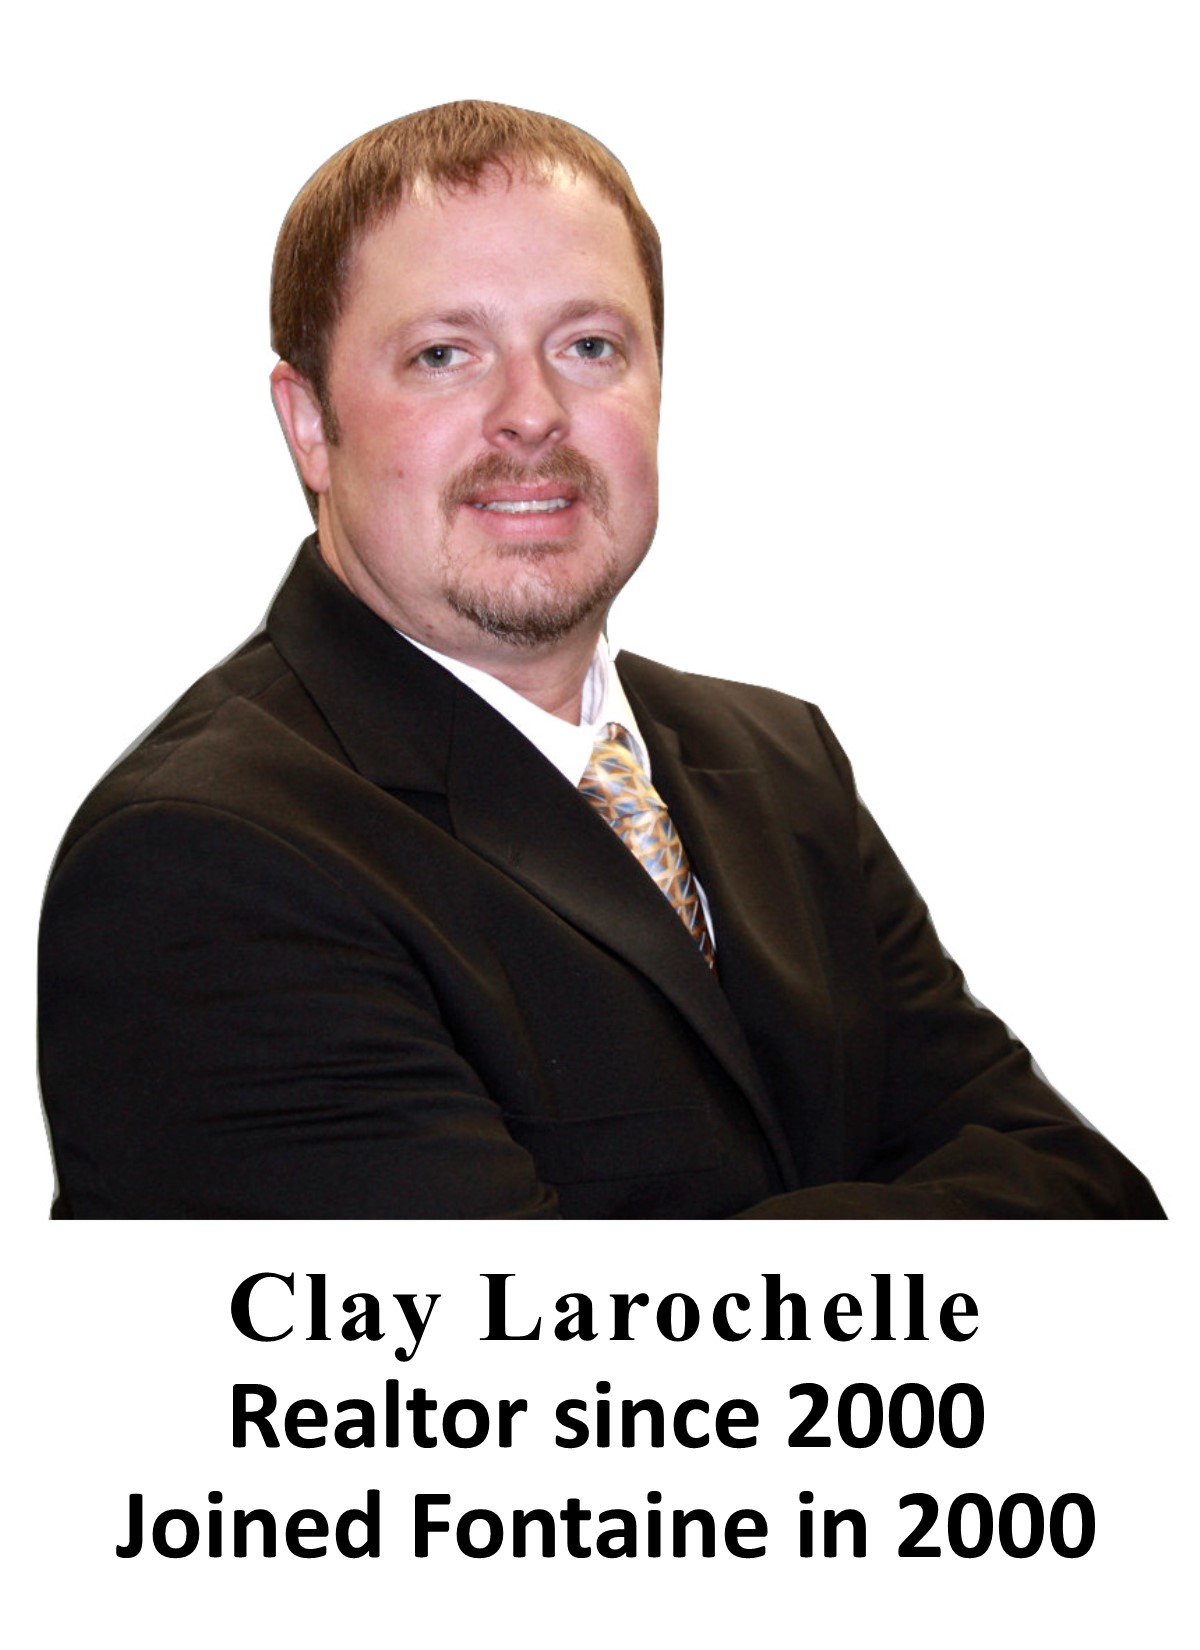 Clay Laorchelle